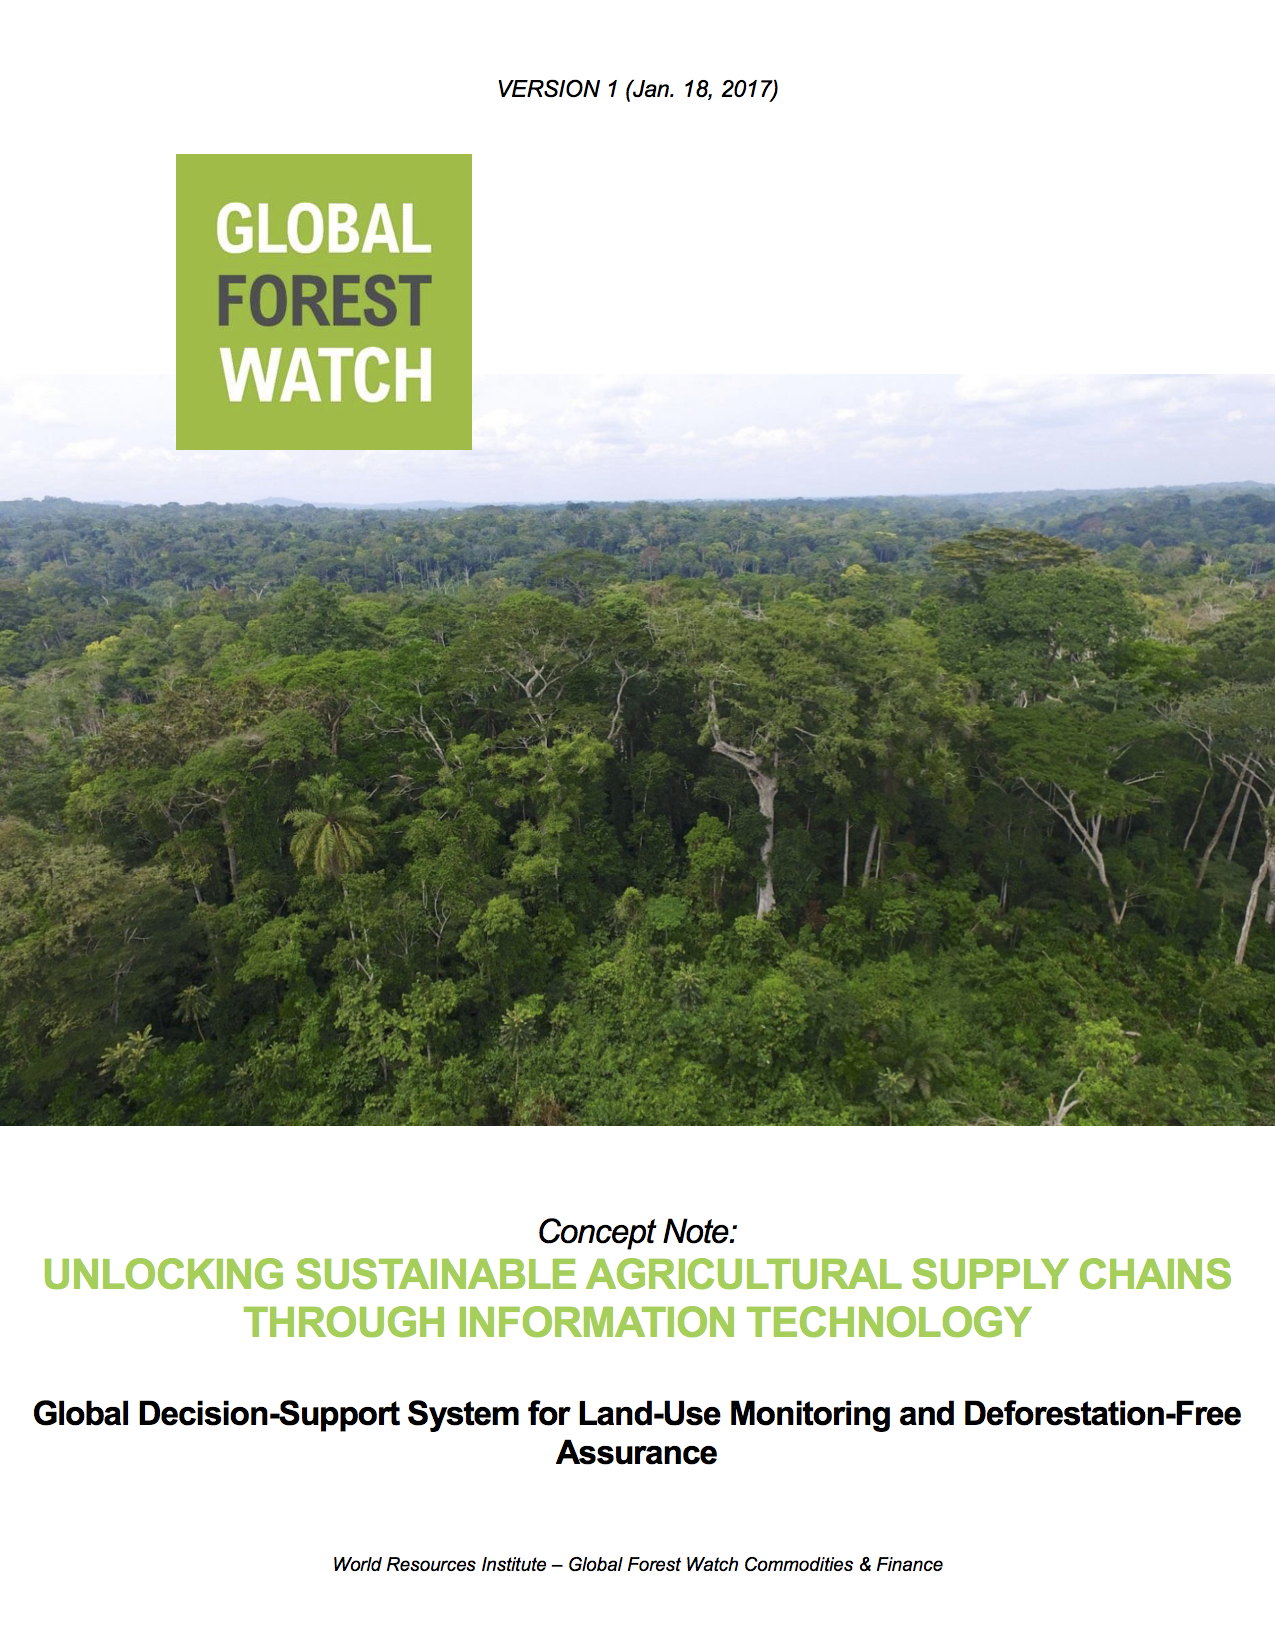 Concept Note – Global Decision-Support System For Land Use Monitoring and Deforestation-Free Assurance